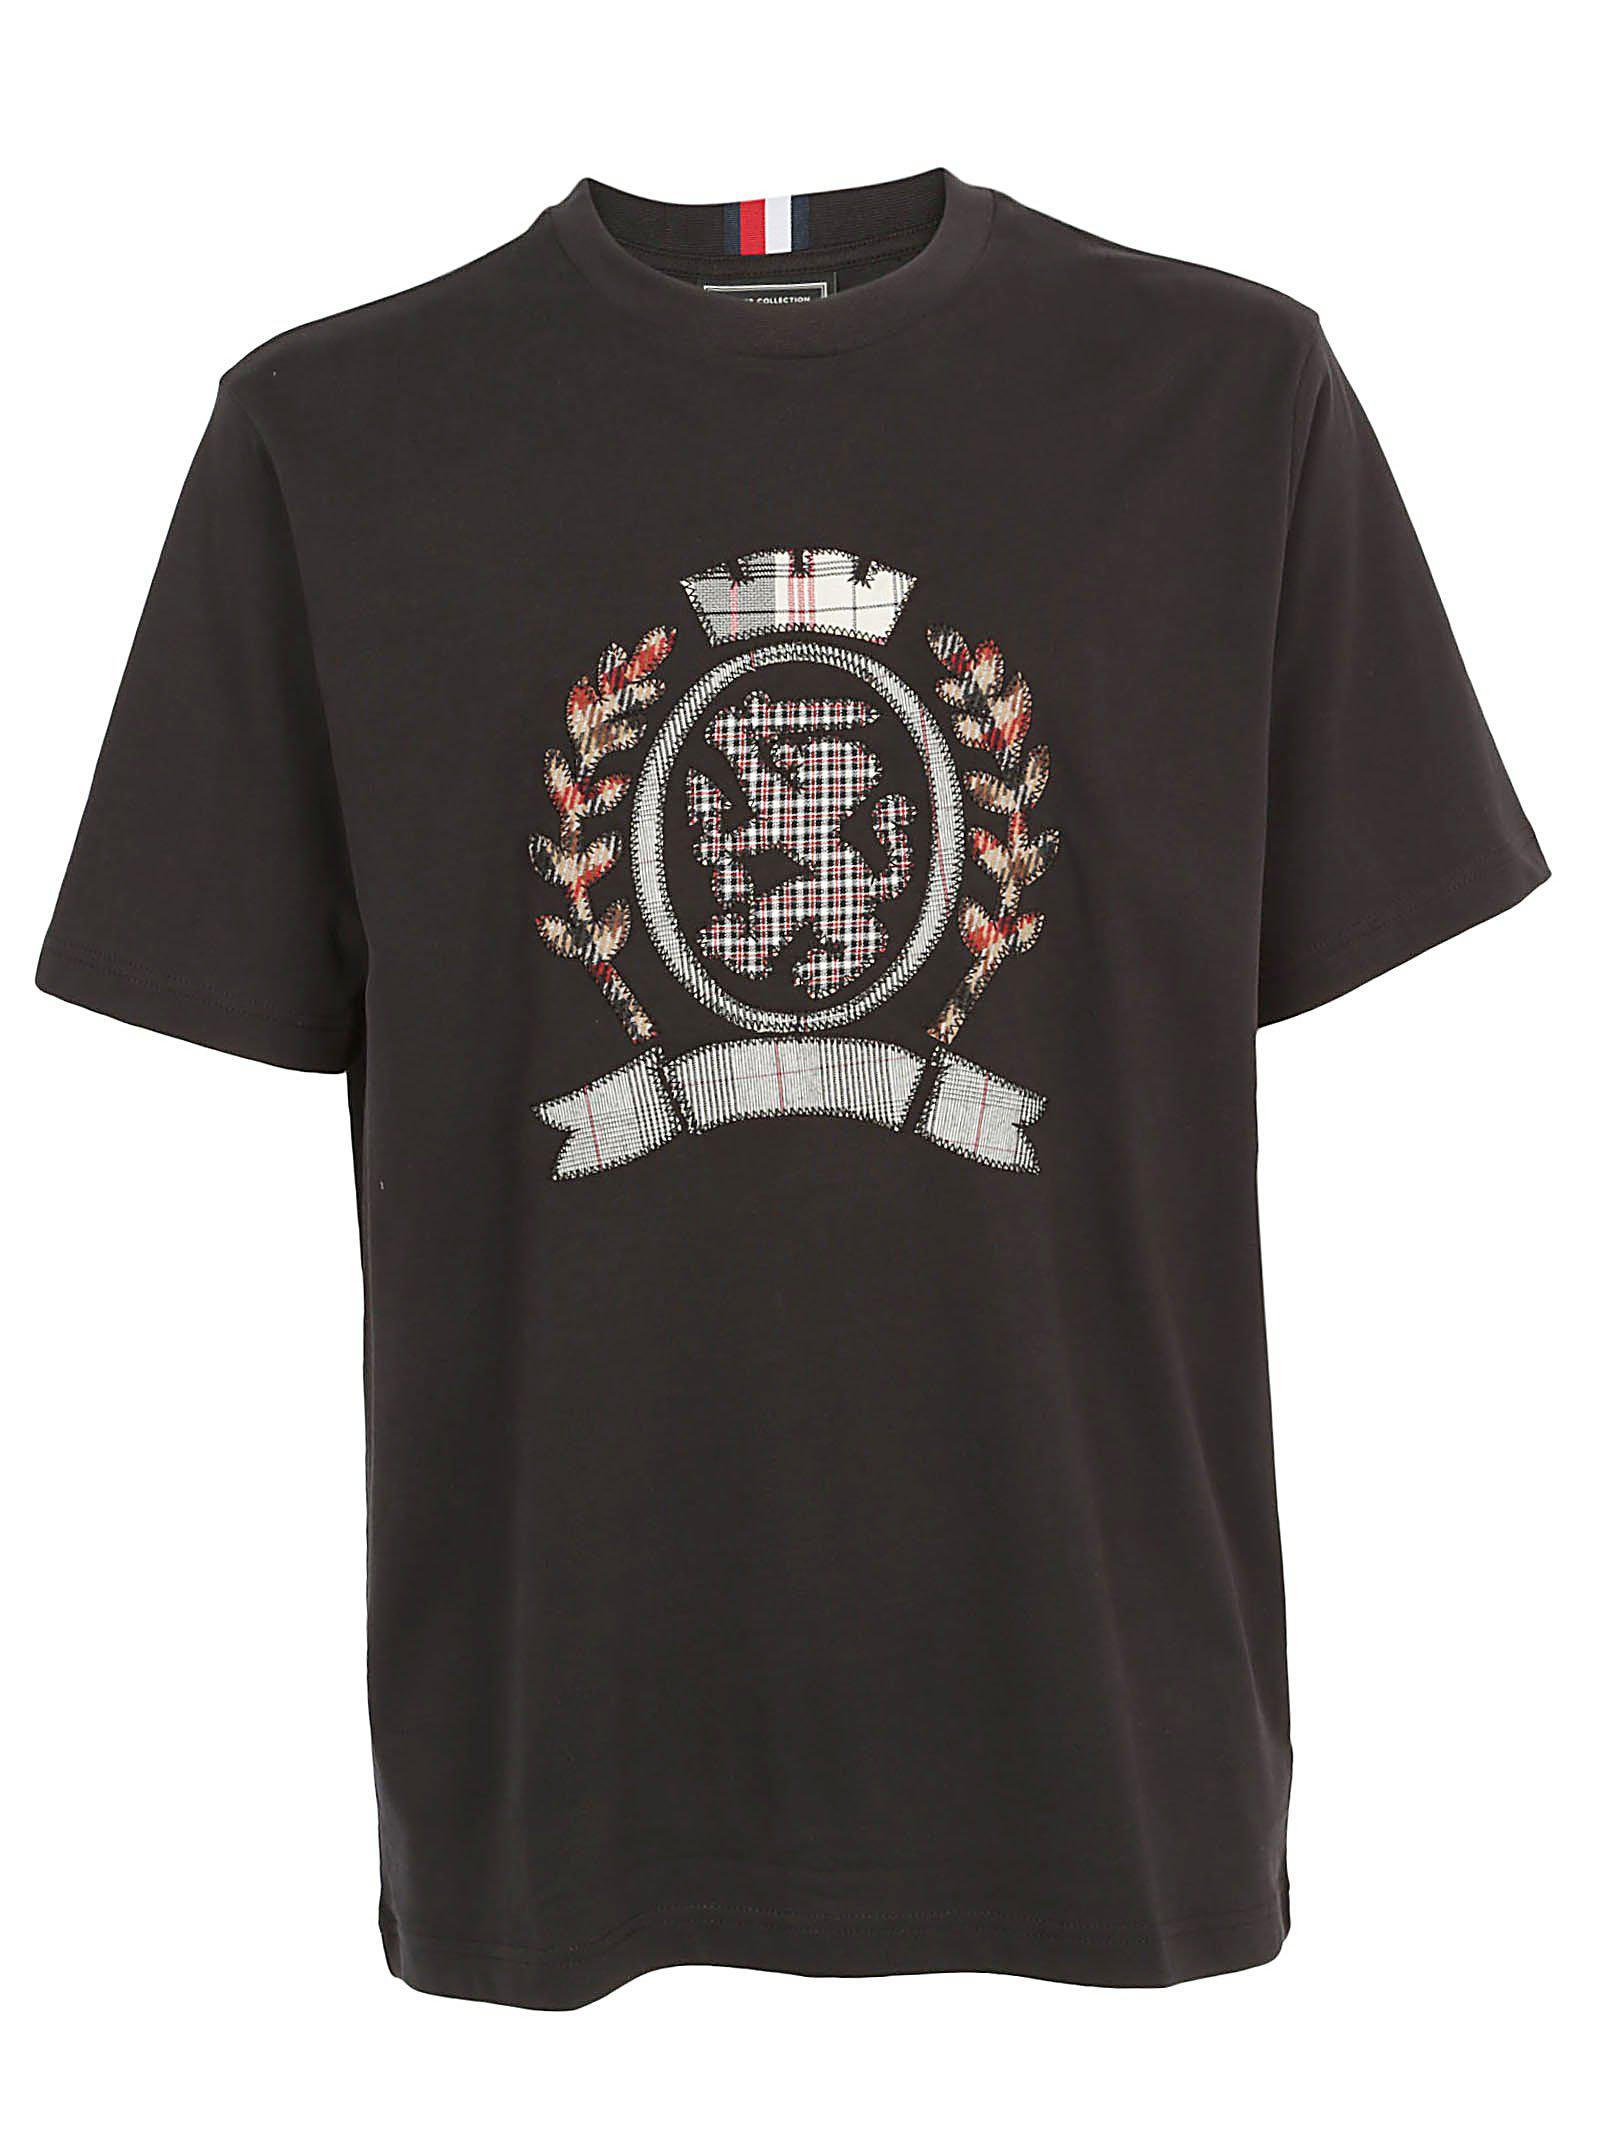 0eb2336b Tommy Hilfiger Embroidered T-shirt in Black for Men - Lyst